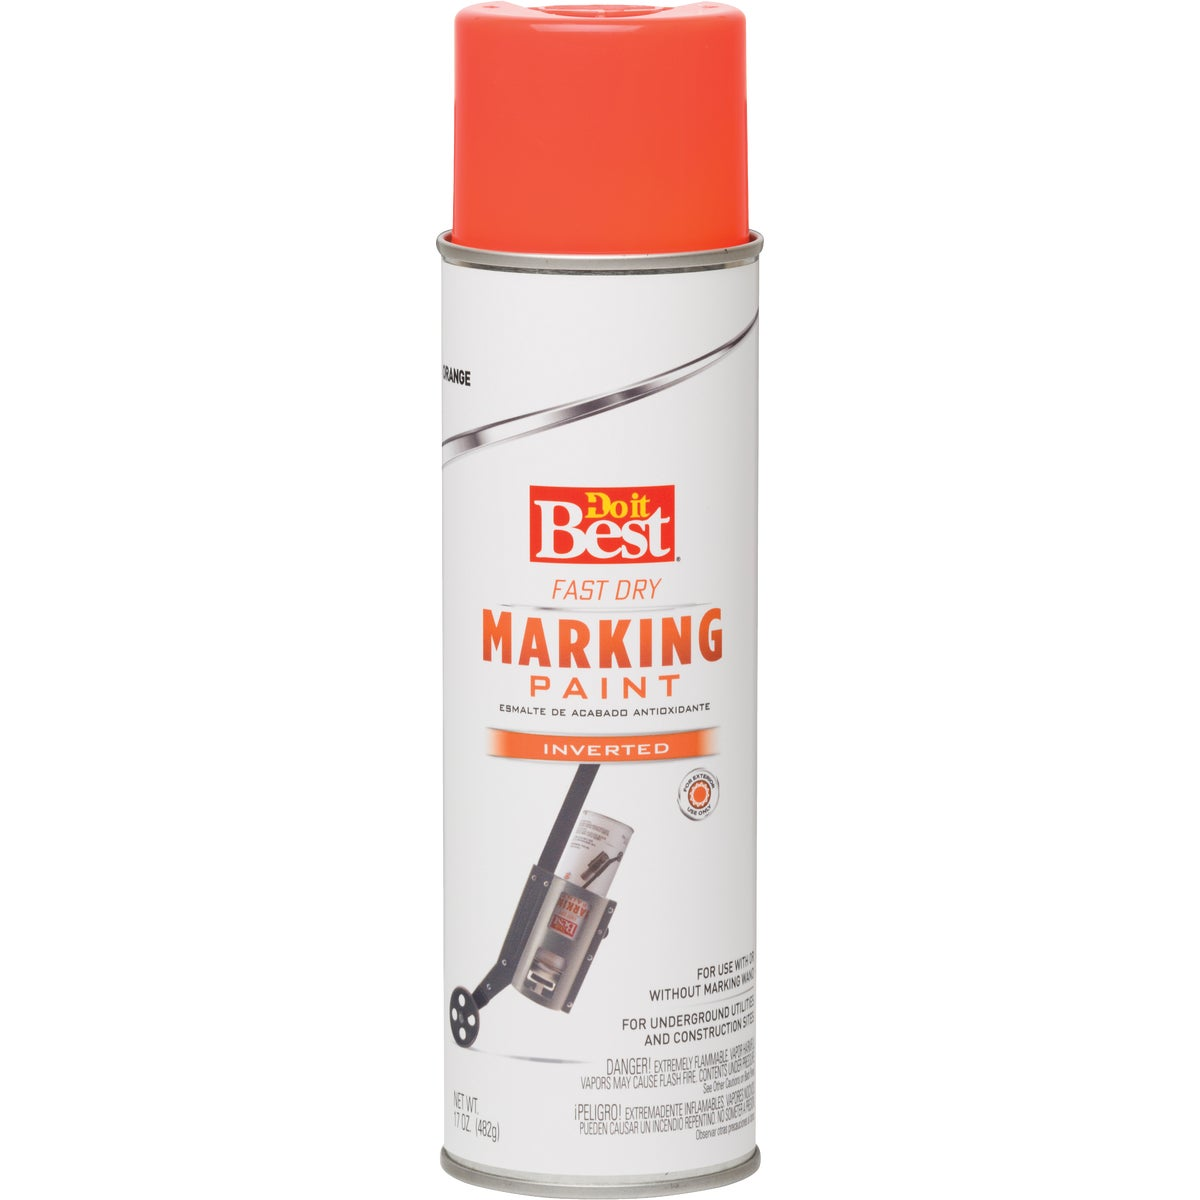 ORANGE MARKING PAINT